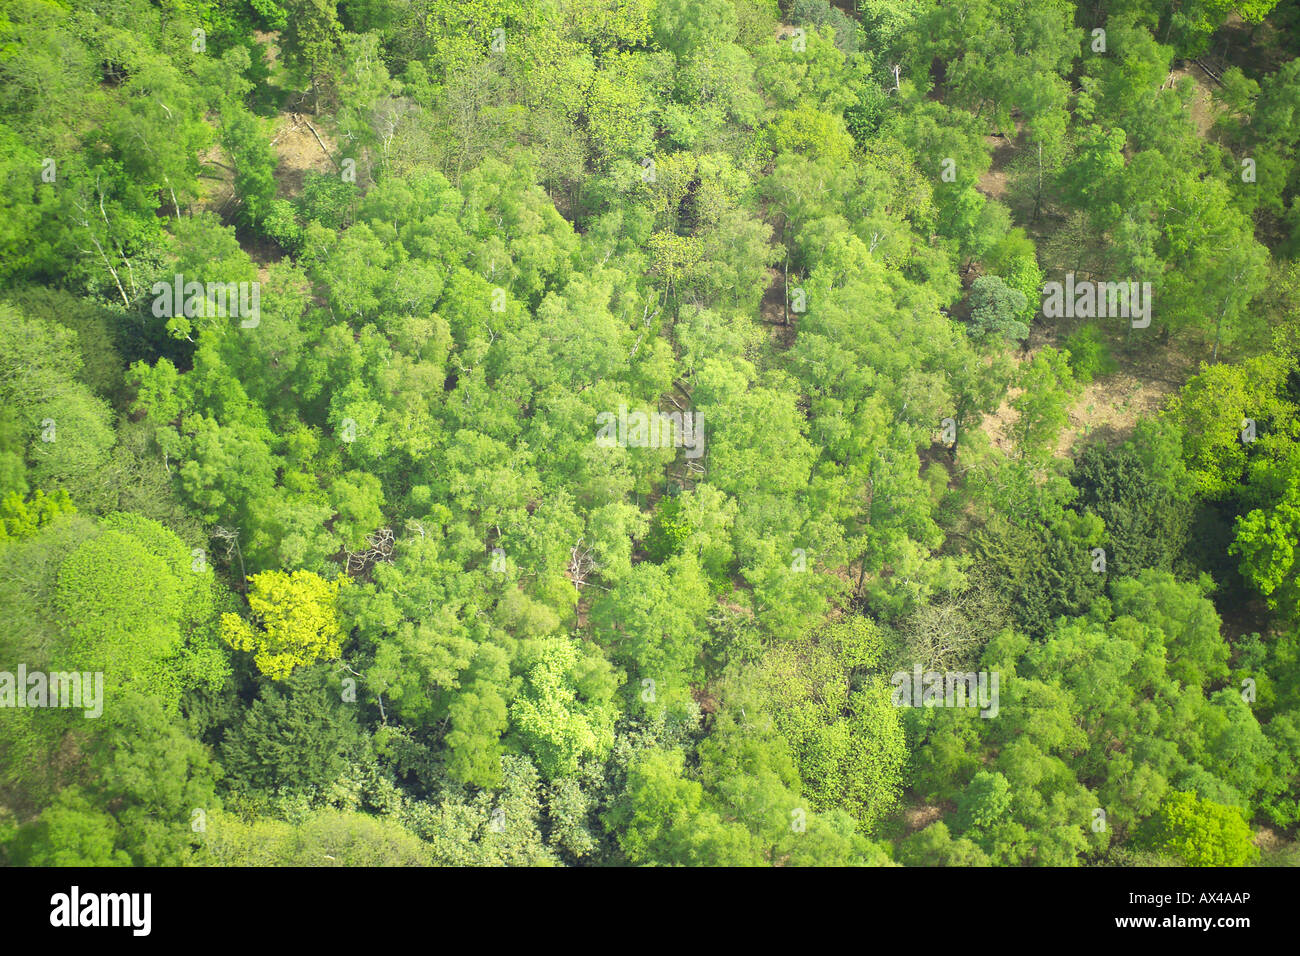 Aerial view of woodlands consisting of Deciduous Trees Stock Photo